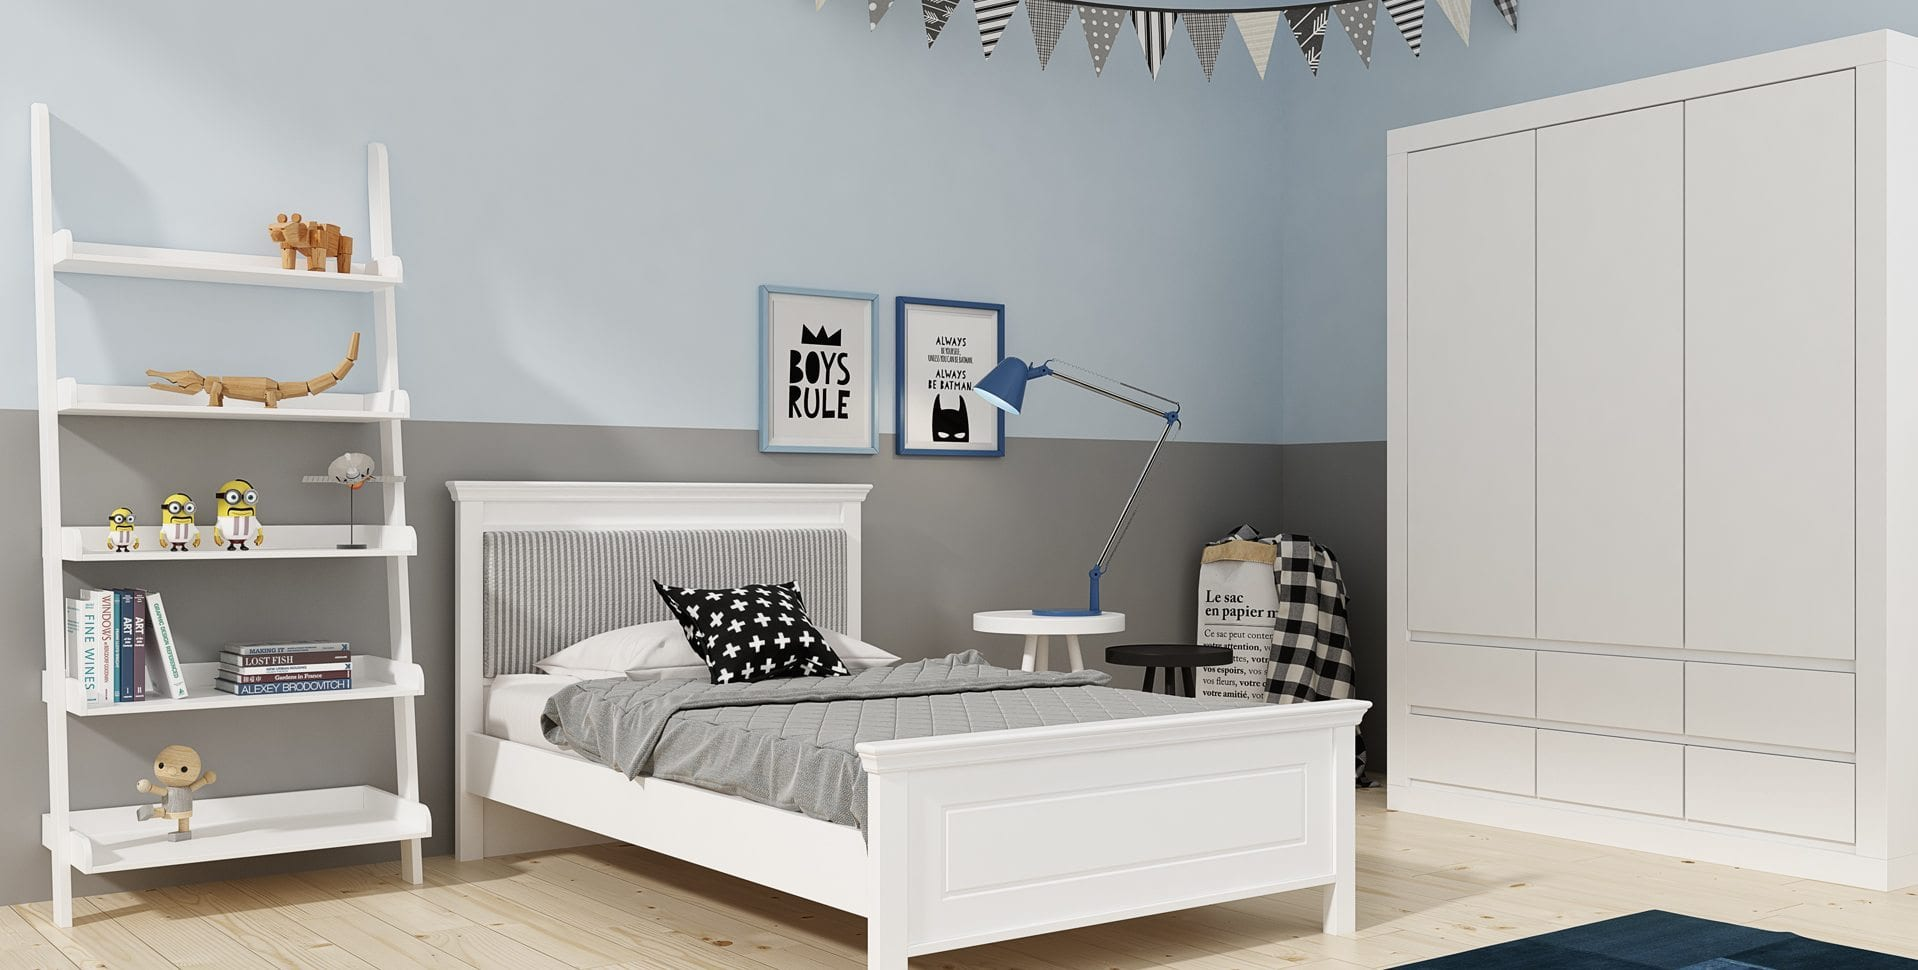 Maayan-Golan_Architectural-Visualization_product-visualization_childrens-furniture_Barzilay_unisex-room_05